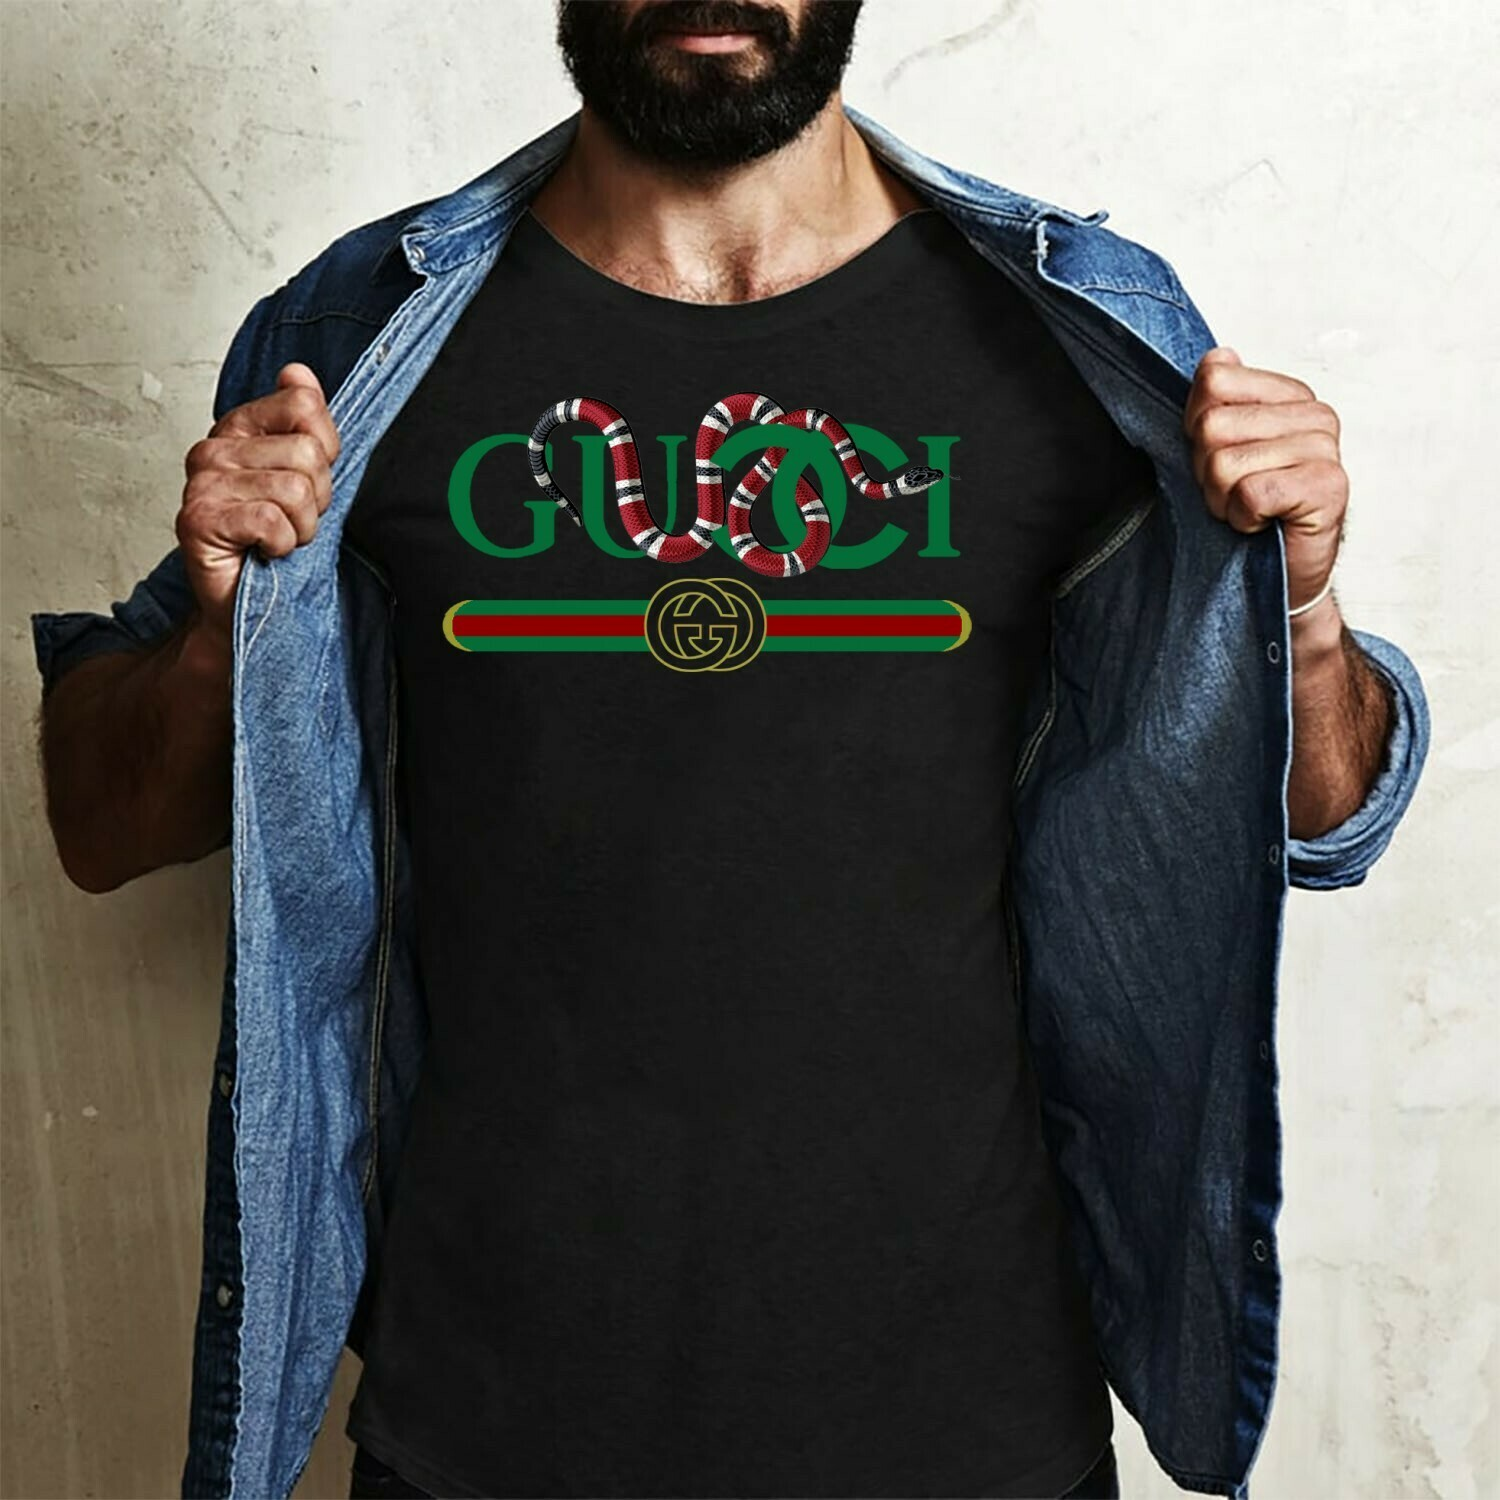 Gucci Snake,Logo Gucci,Gucci Shirt,Gucci T-shirt,Gucci Logo,Gucci Fashion shirt,Fashion shirt,Gucci Design shirt,Snake Gucci vintage shirt Long Sleeve Sweatshirt Hoodie Jolly Family Gifts